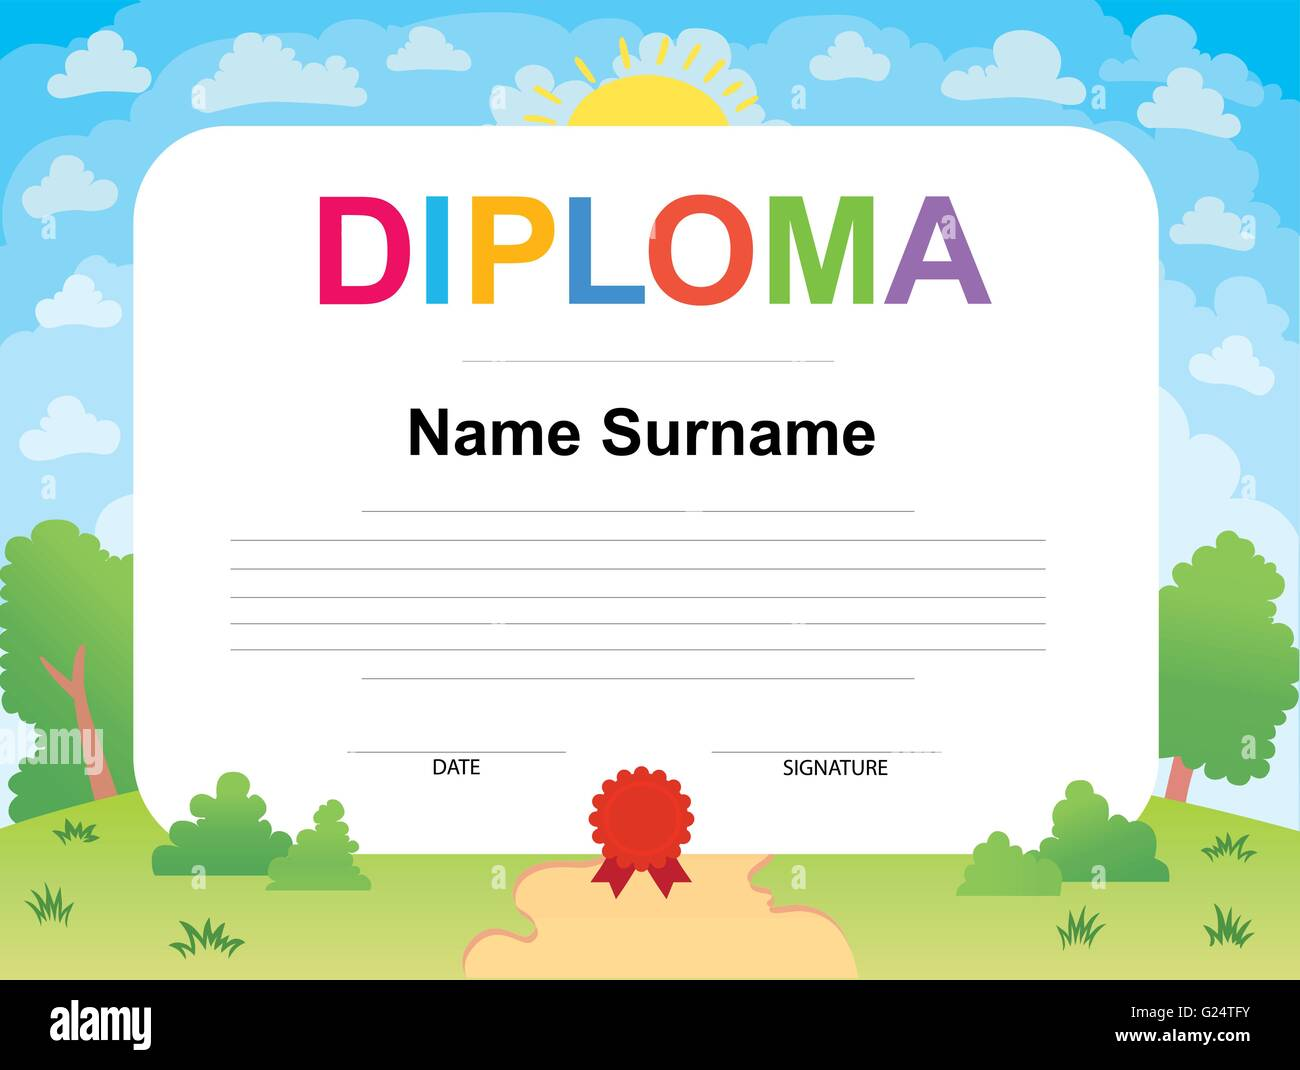 Certificate background stock vectors for Certificate template for kids